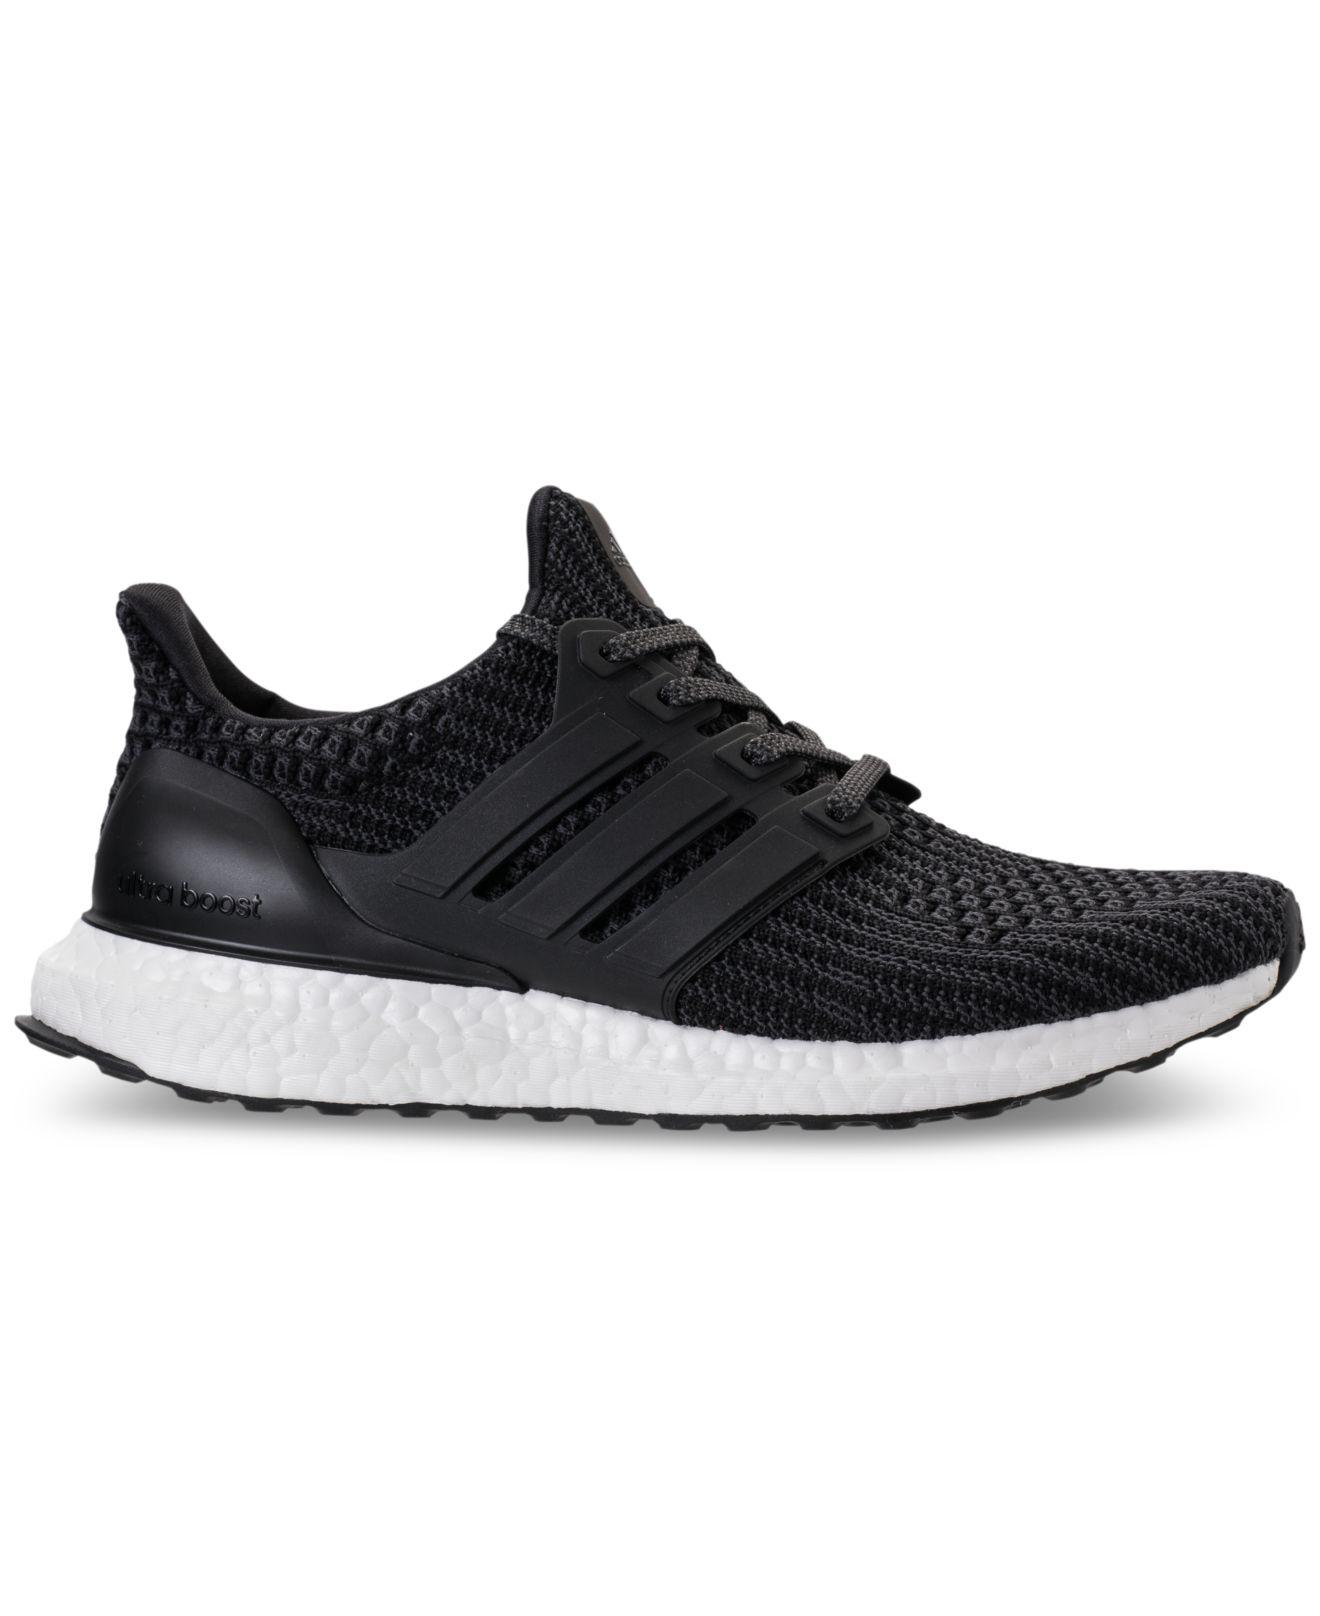 d16af379c ... real lyst adidas womens ultra boost running sneakers from finish line  in black a6875 830d8